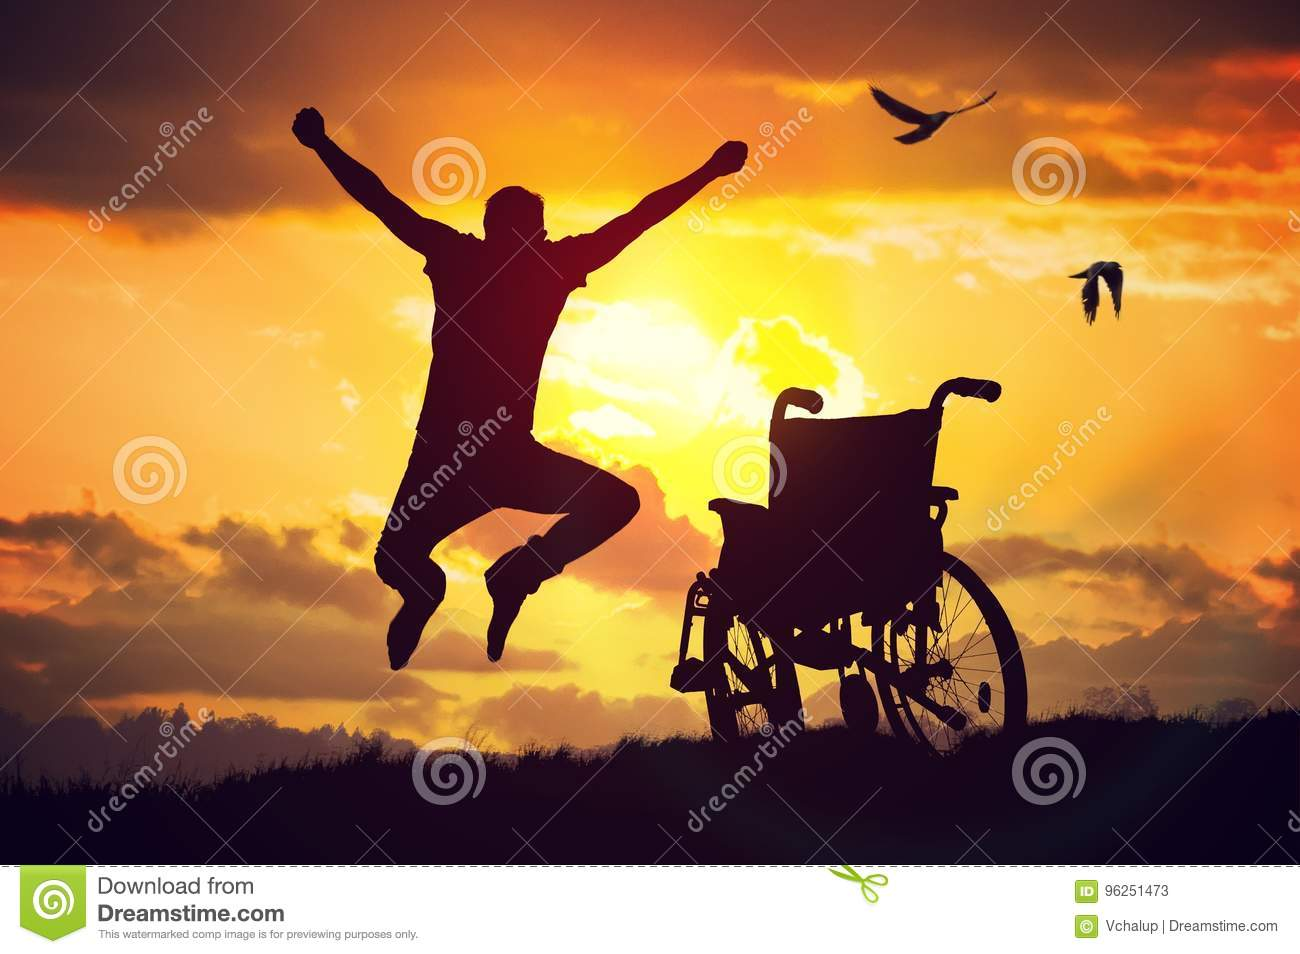 A miracle happened. Disabled handicapped man is healthy again. He is happy and jumping at sunset